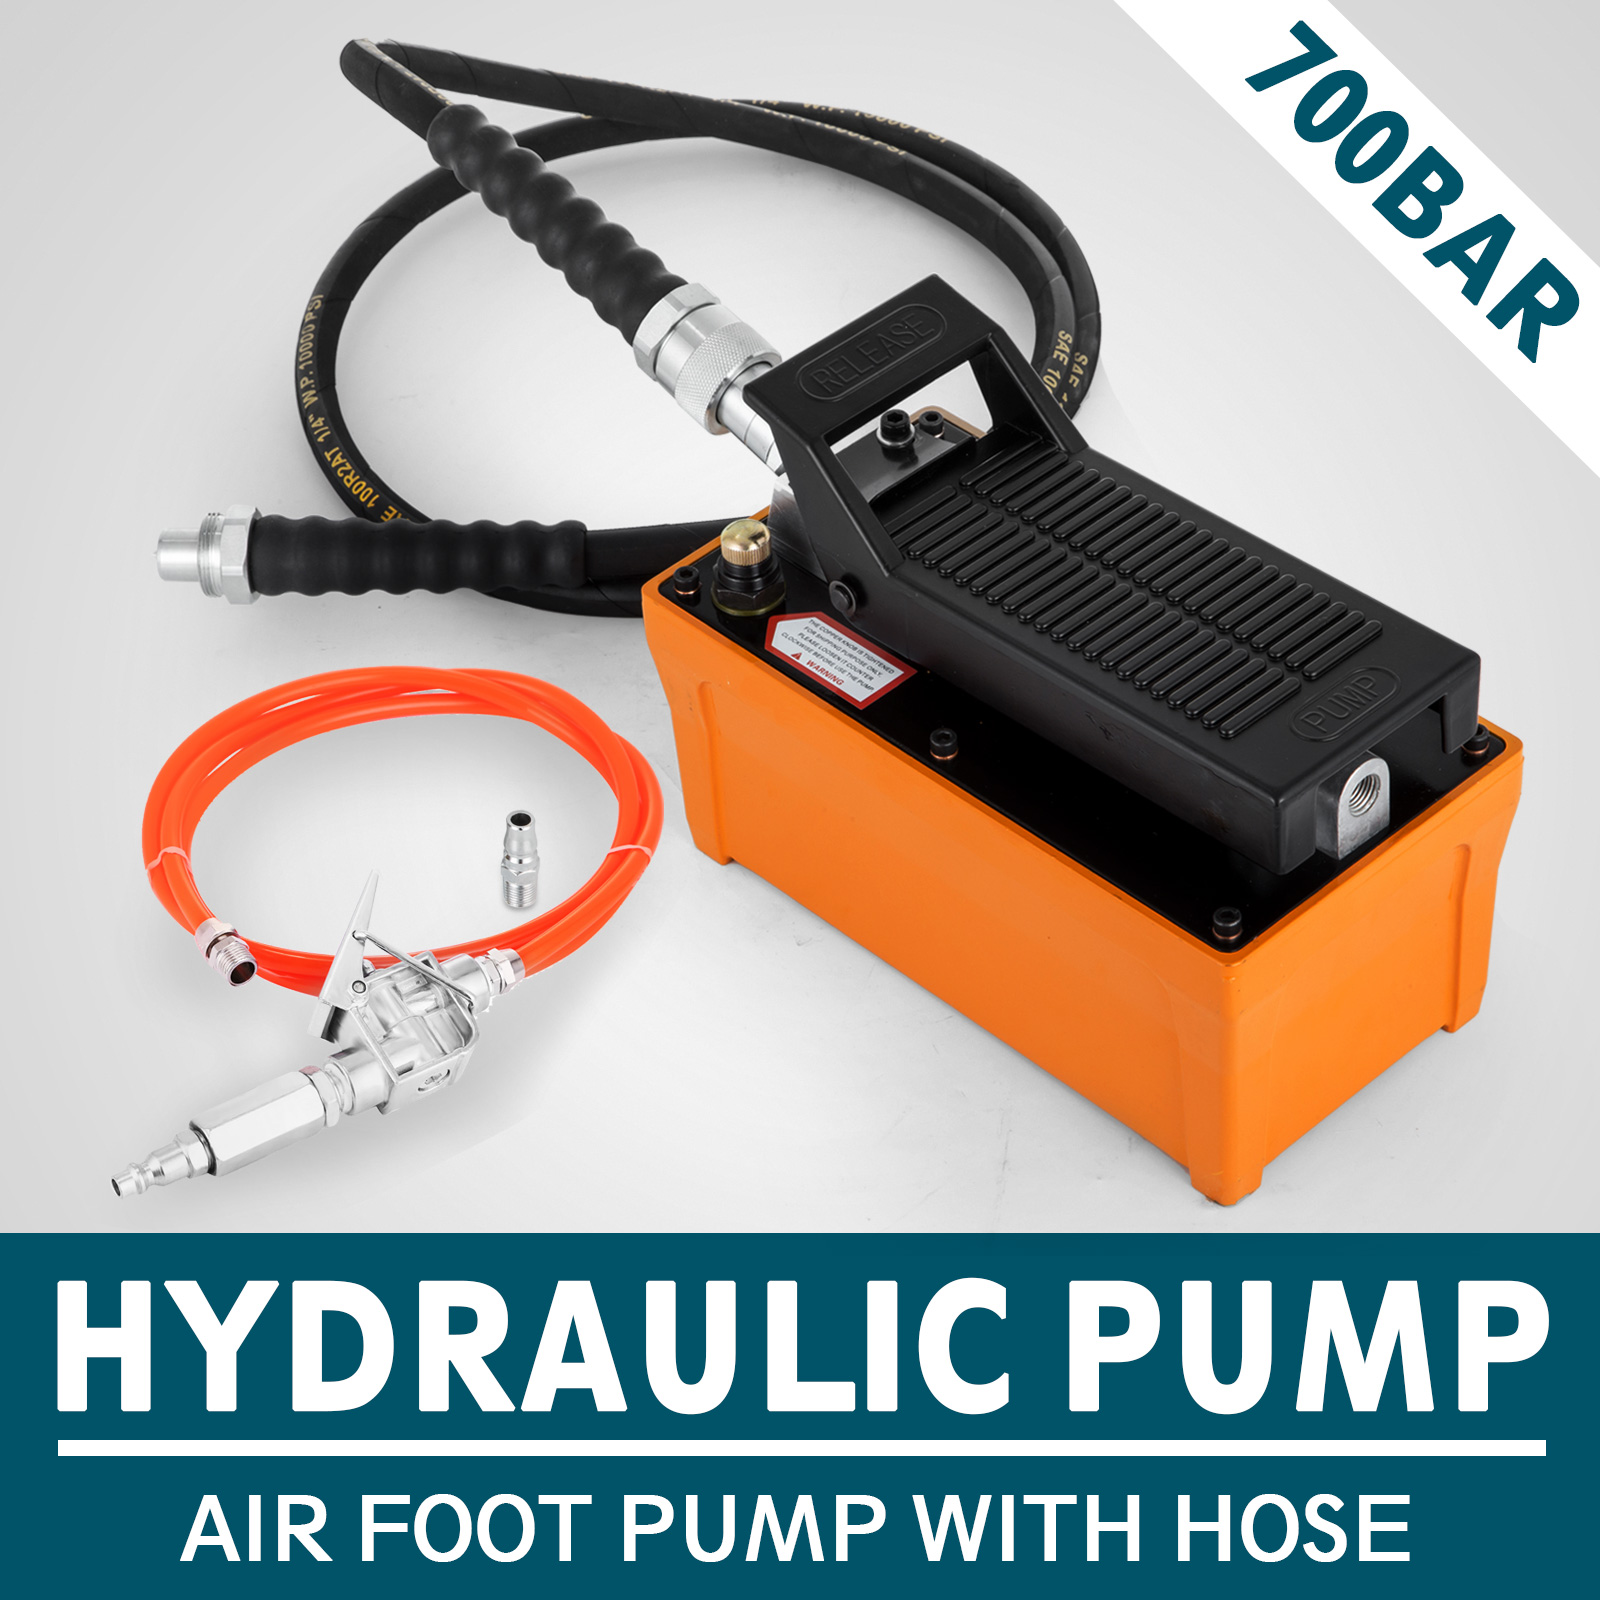 Power-Hydraulic-10000PSI-Air-Foot-Pump-10-Ton-Replacement-Pump-With-Hose miniature 13